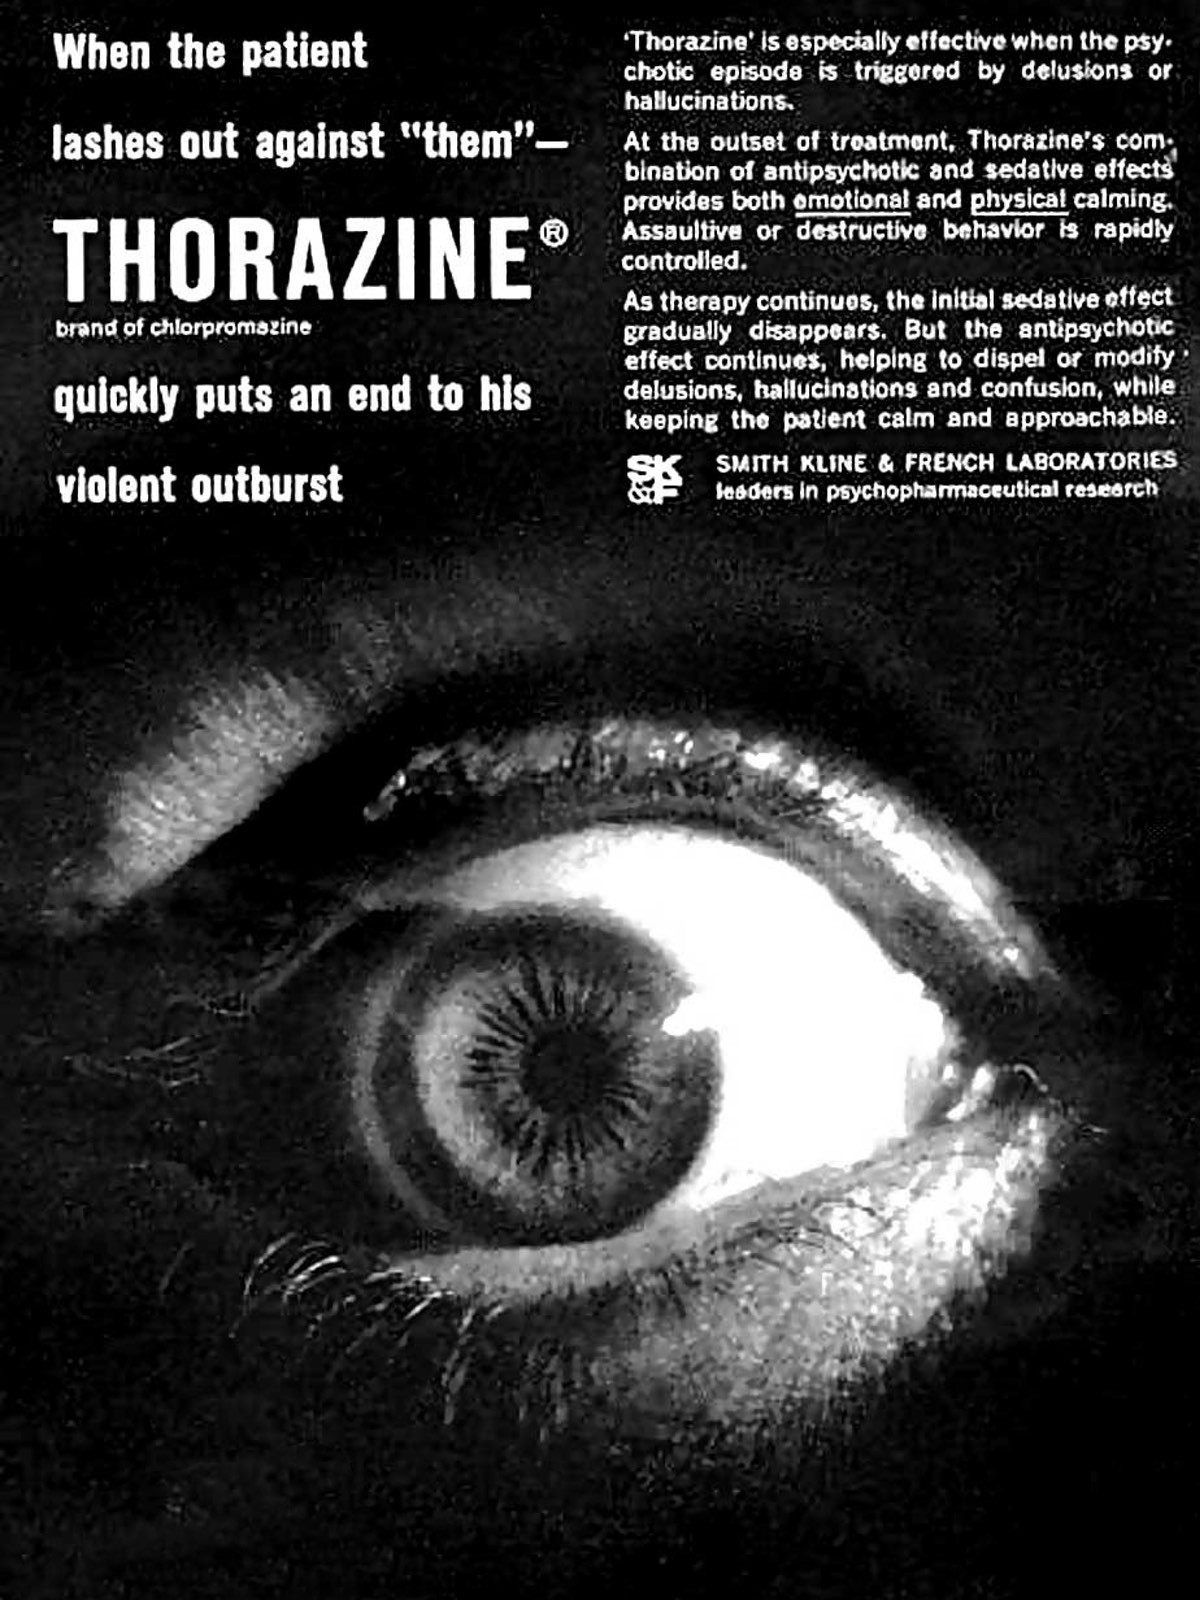 11,000 doses of anti-psychotic drug Thorazine—used by the CIA's MK-ULTRA program, were found at Jonestown